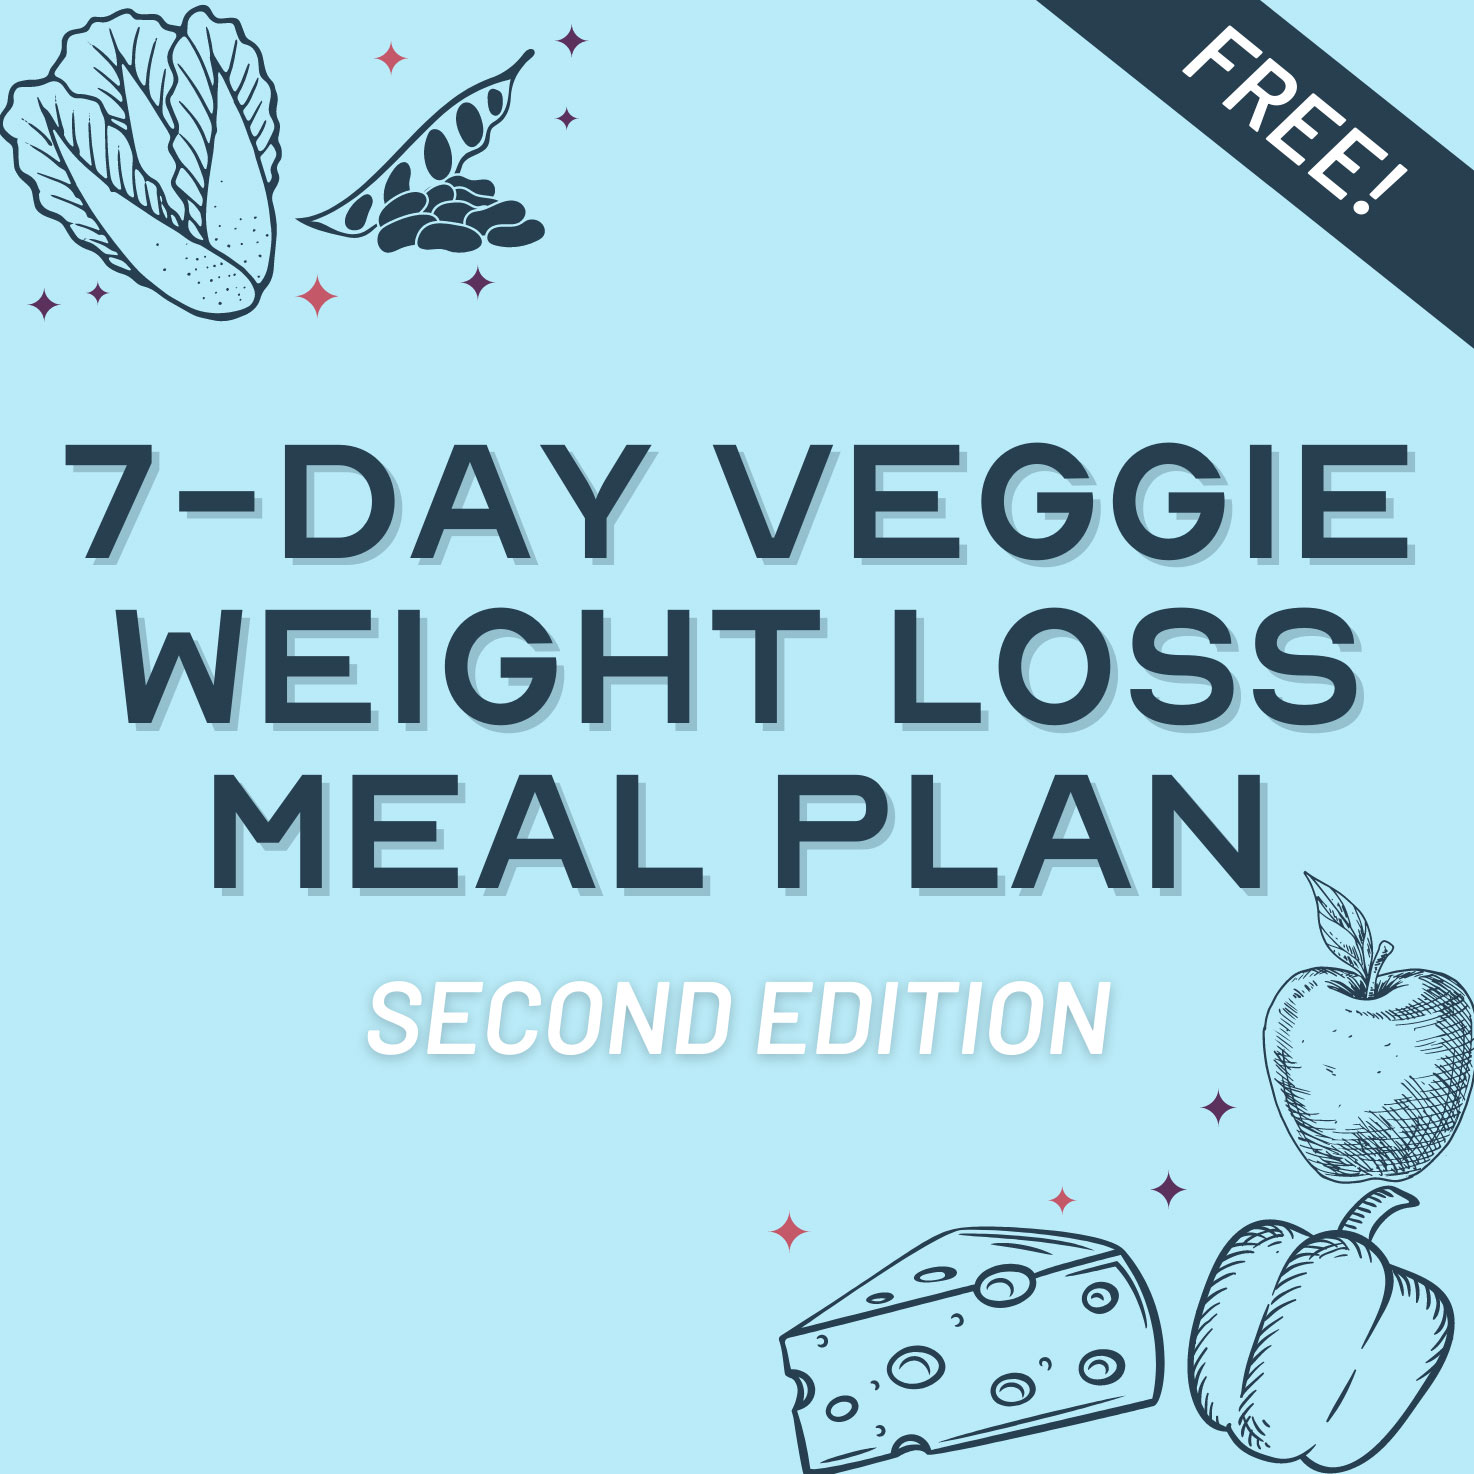 7-Day Vegetarian Weight Loss Meal Plan: 1500 kcal/day - Free Download